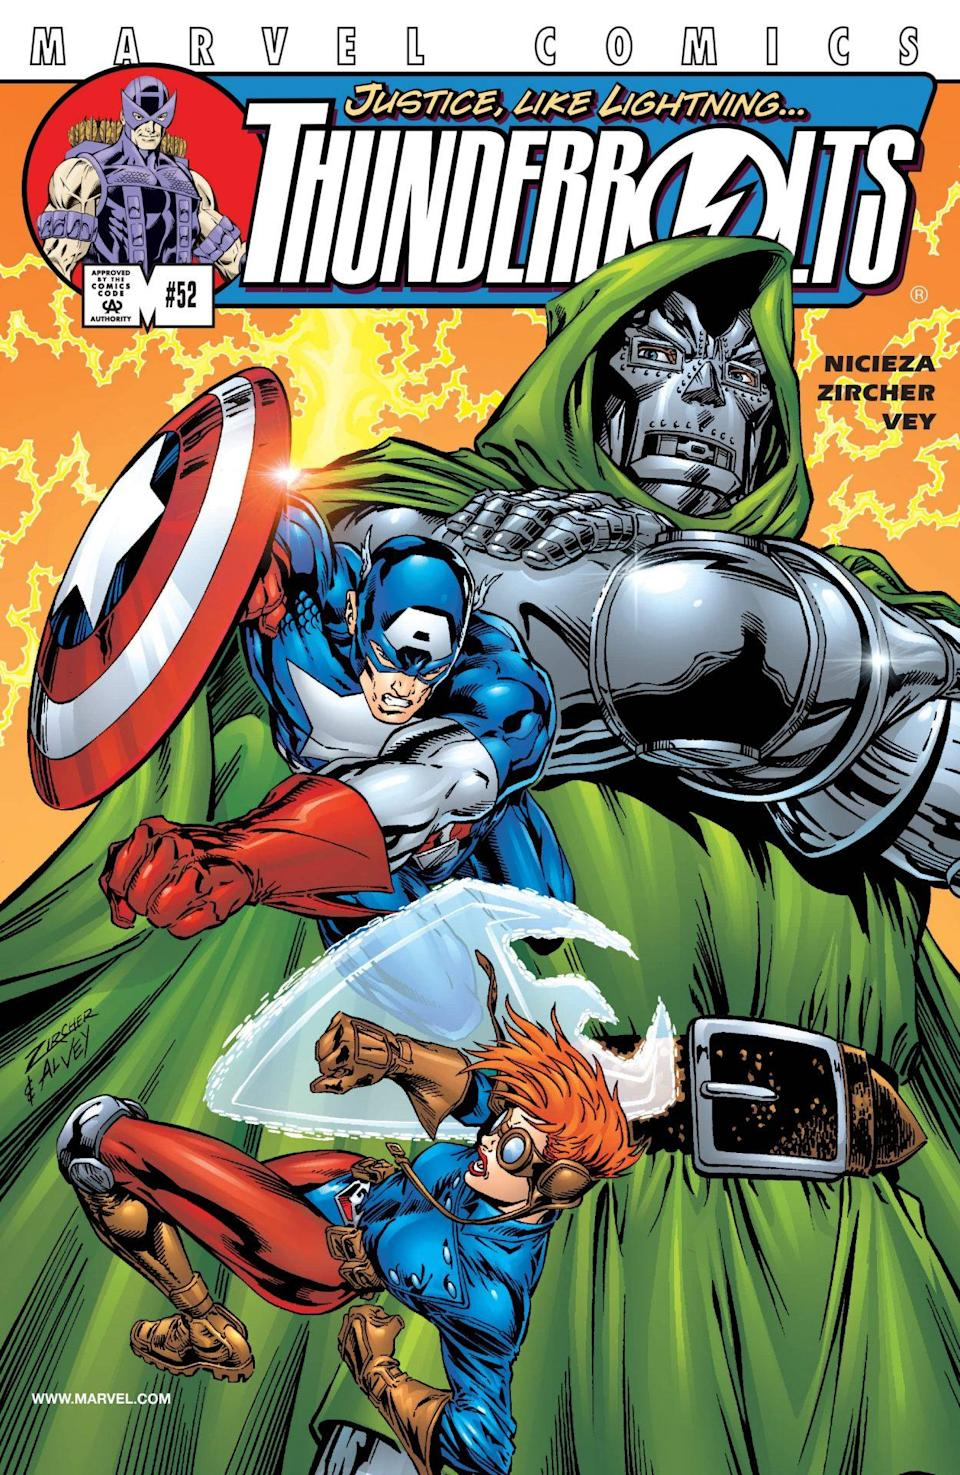 Captain America fights a foe on the cover of Thunderbolts.